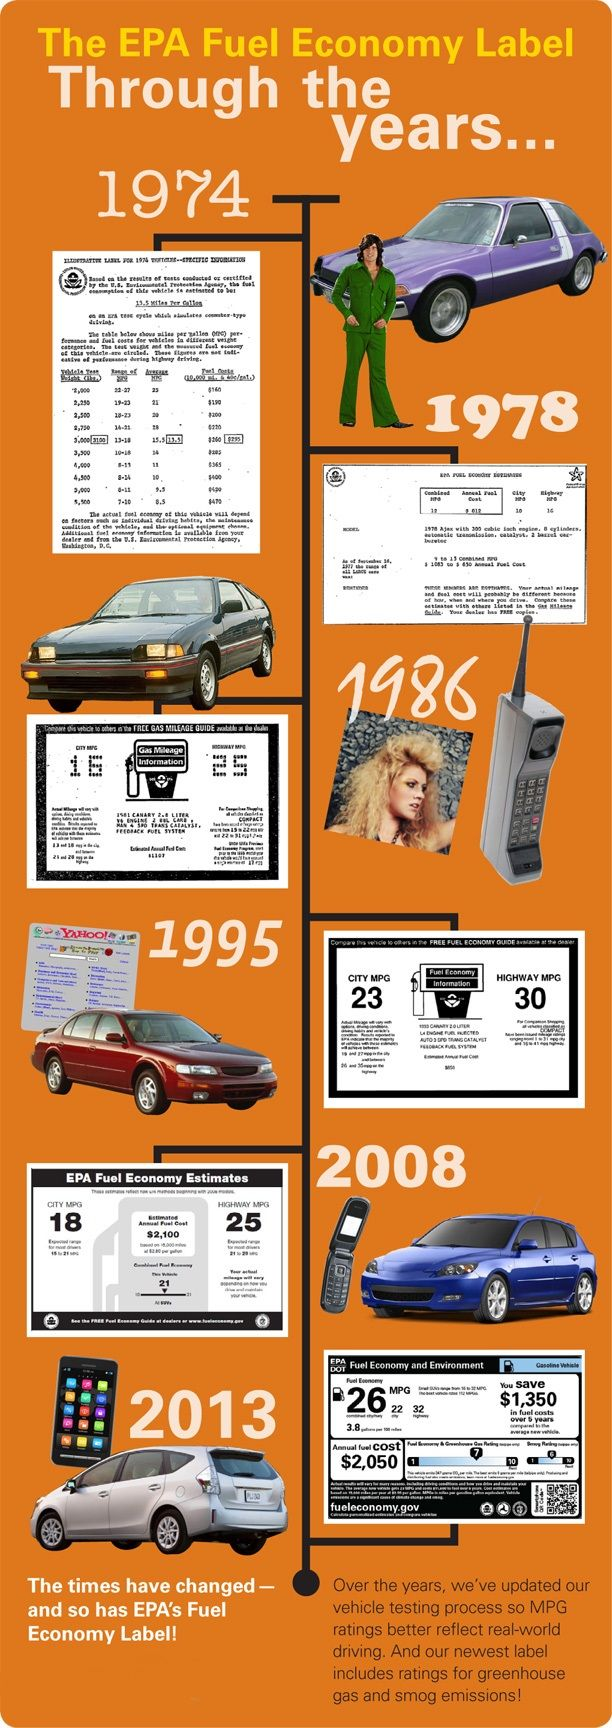 The EPA Fuel Economy Label Through the years…  1974 (image of original fuel economy label alongside 1970s car and a guy wearing bell bottoms.)    1978 (image of 1978 fuel economy label)    1986 (image of 1986 fuel economy label, a car from the mid 1980s, a large cellphone and a woman with big hair.)    1995 (image of 1995 fuel economy label alongside a car from the mid-1990s and a web browser page from that era.)    2008 (image of 2008 fuel economy label along with a flip phone and a car…